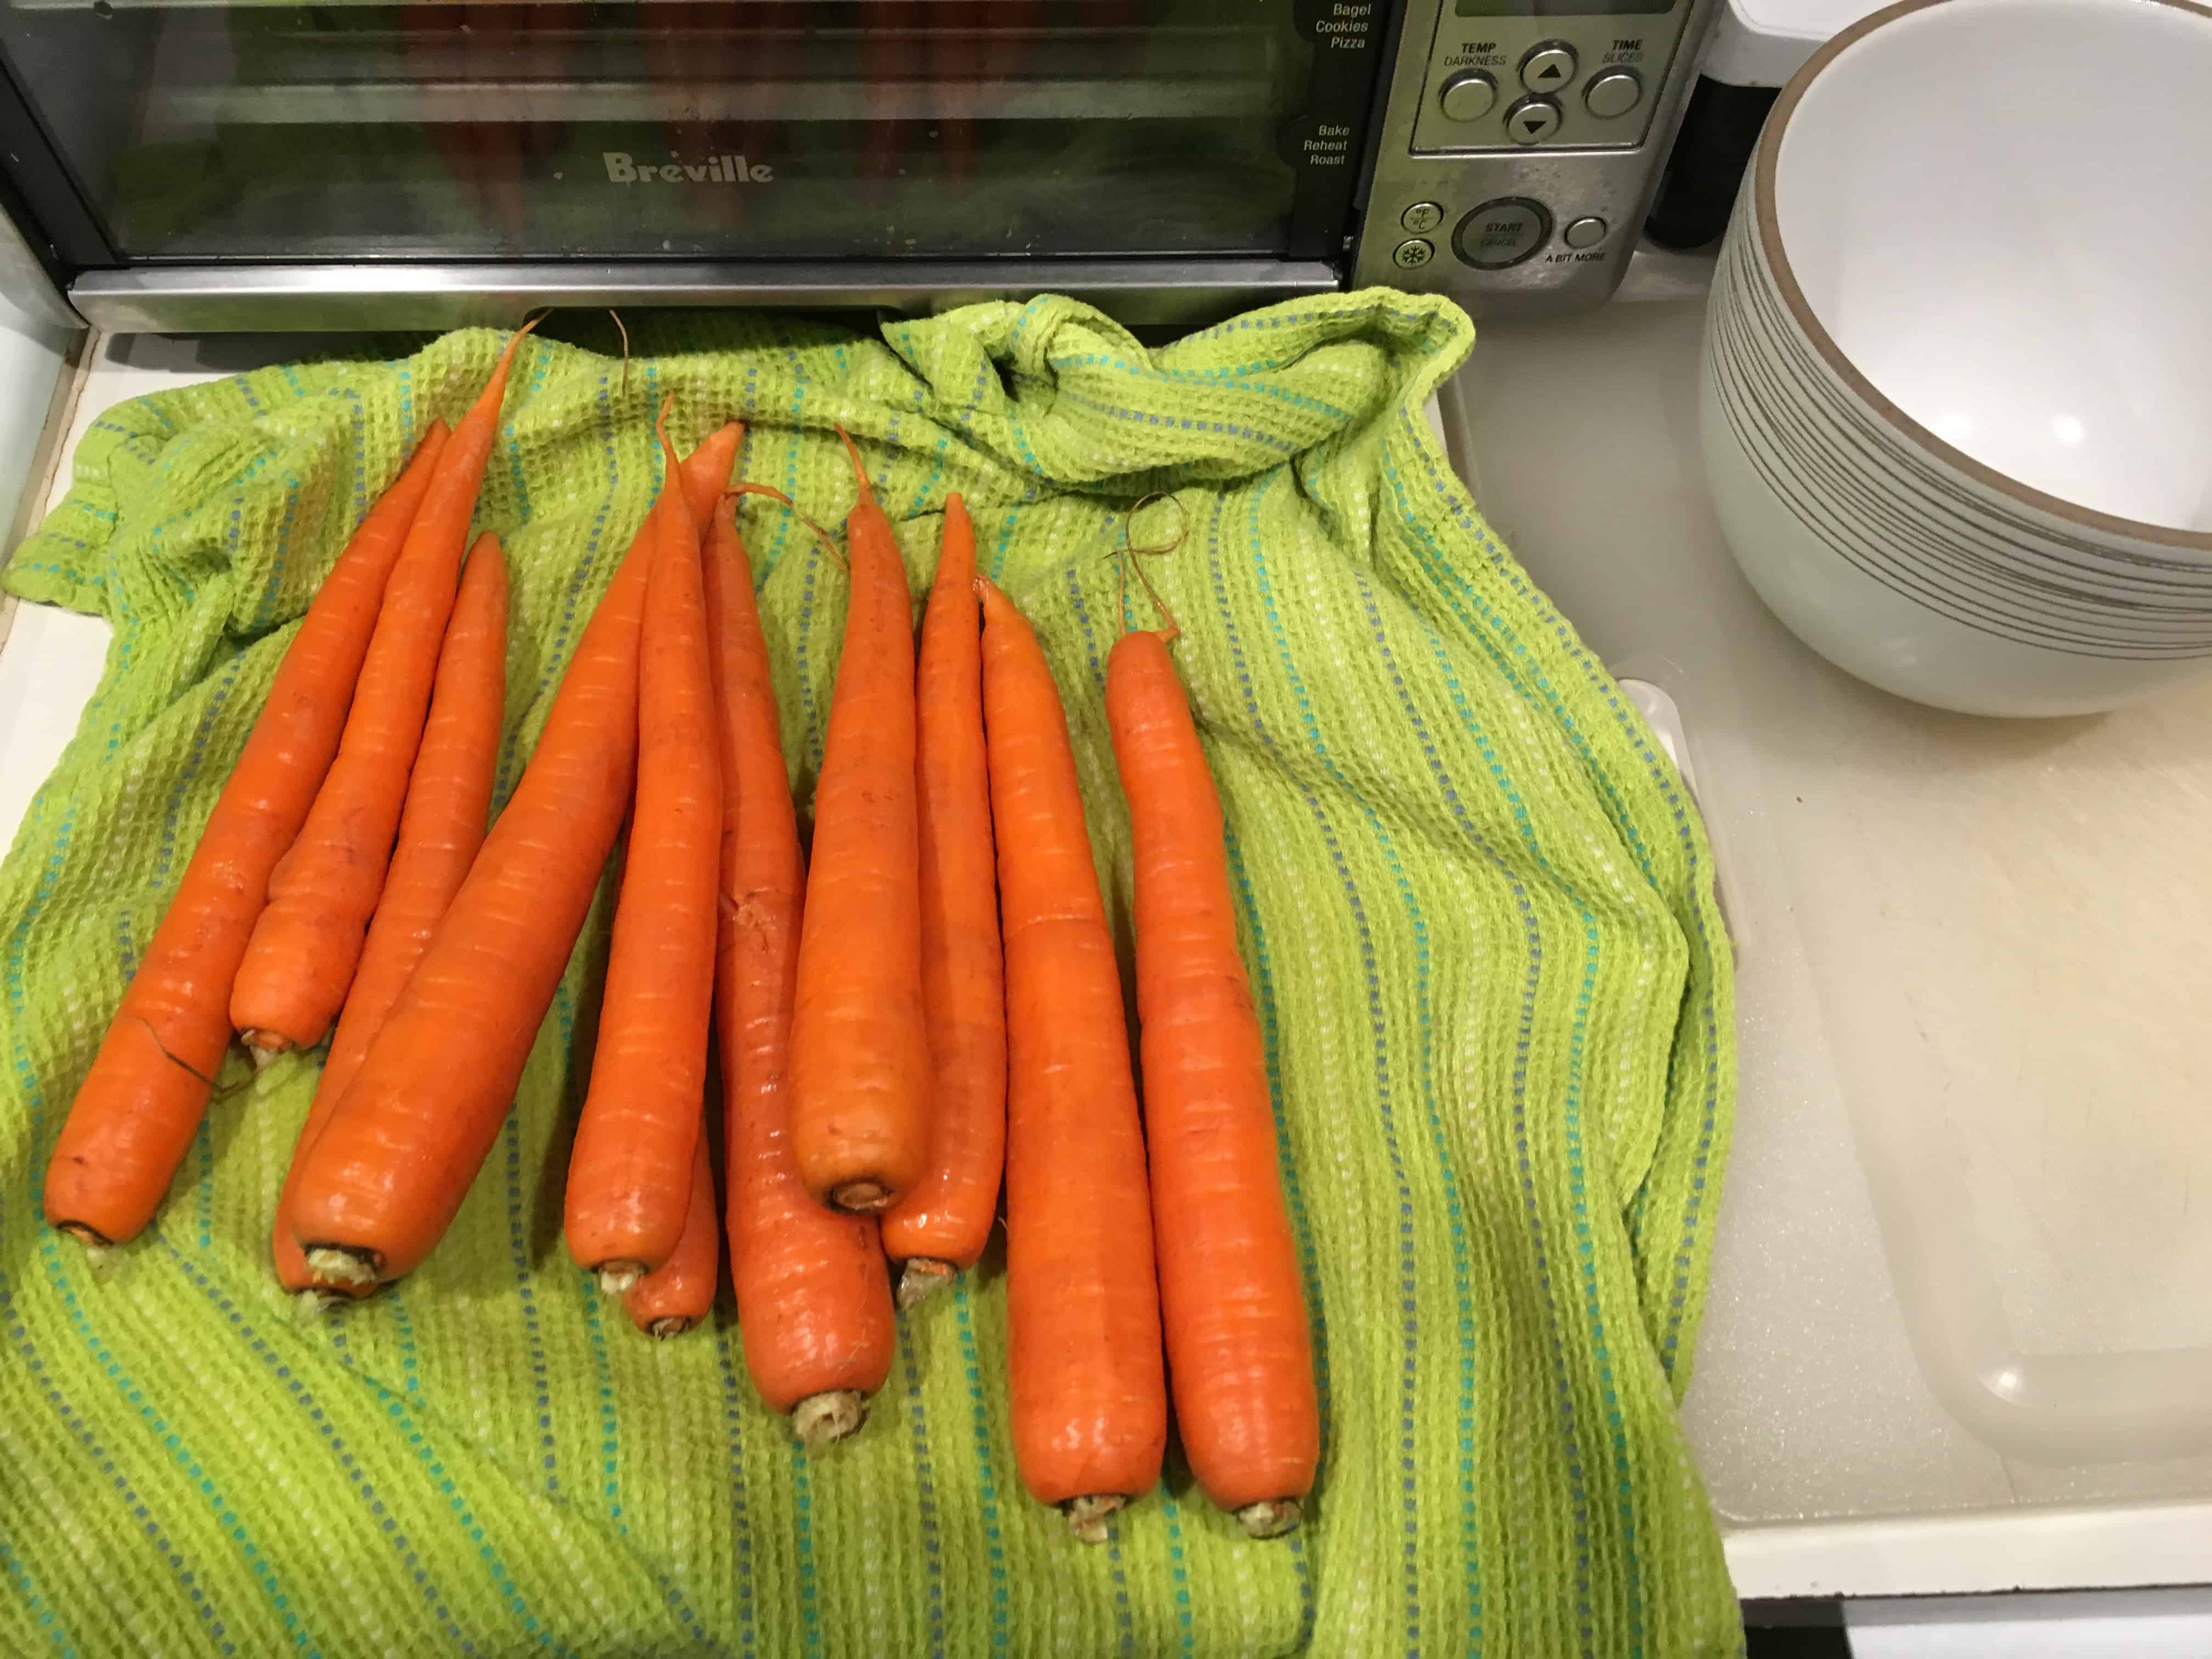 Carrots for chopping.